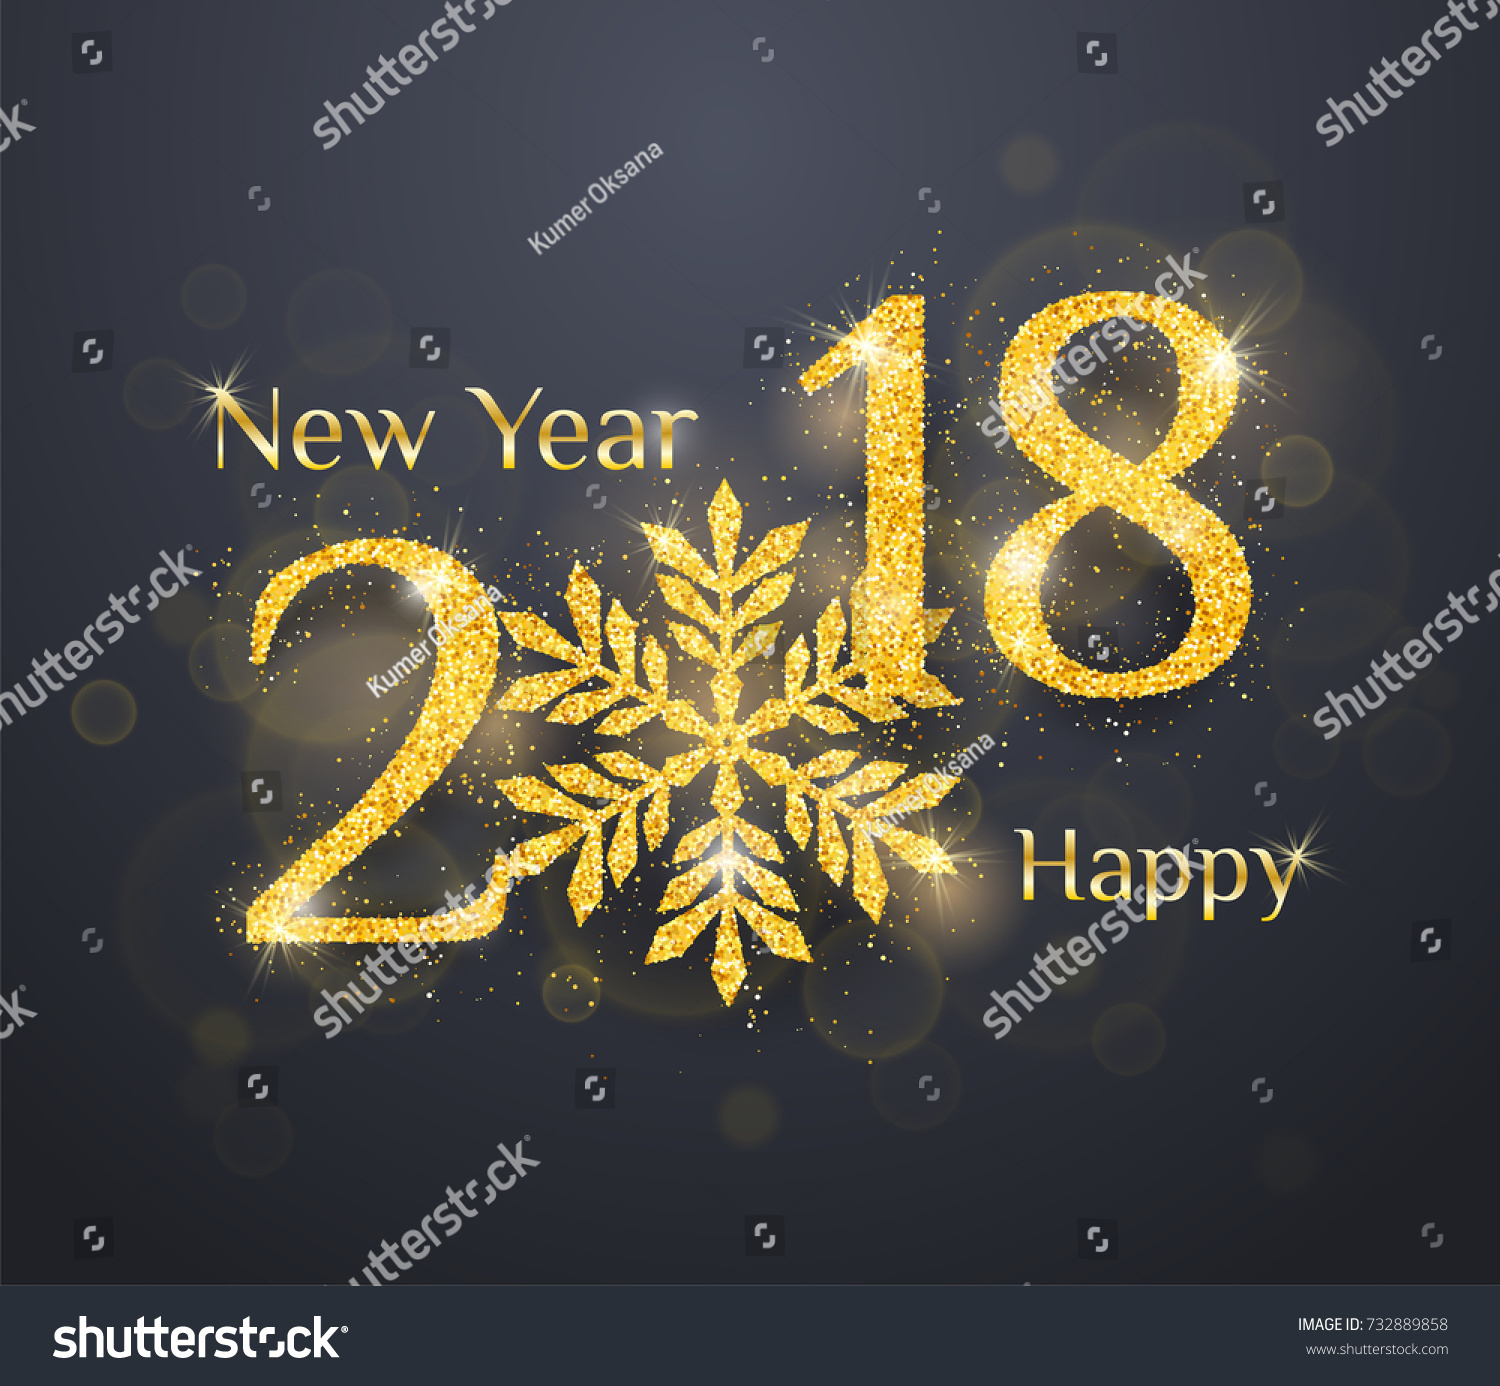 2018 happy new year greeting card background with golden glitter numbers on dark background vector